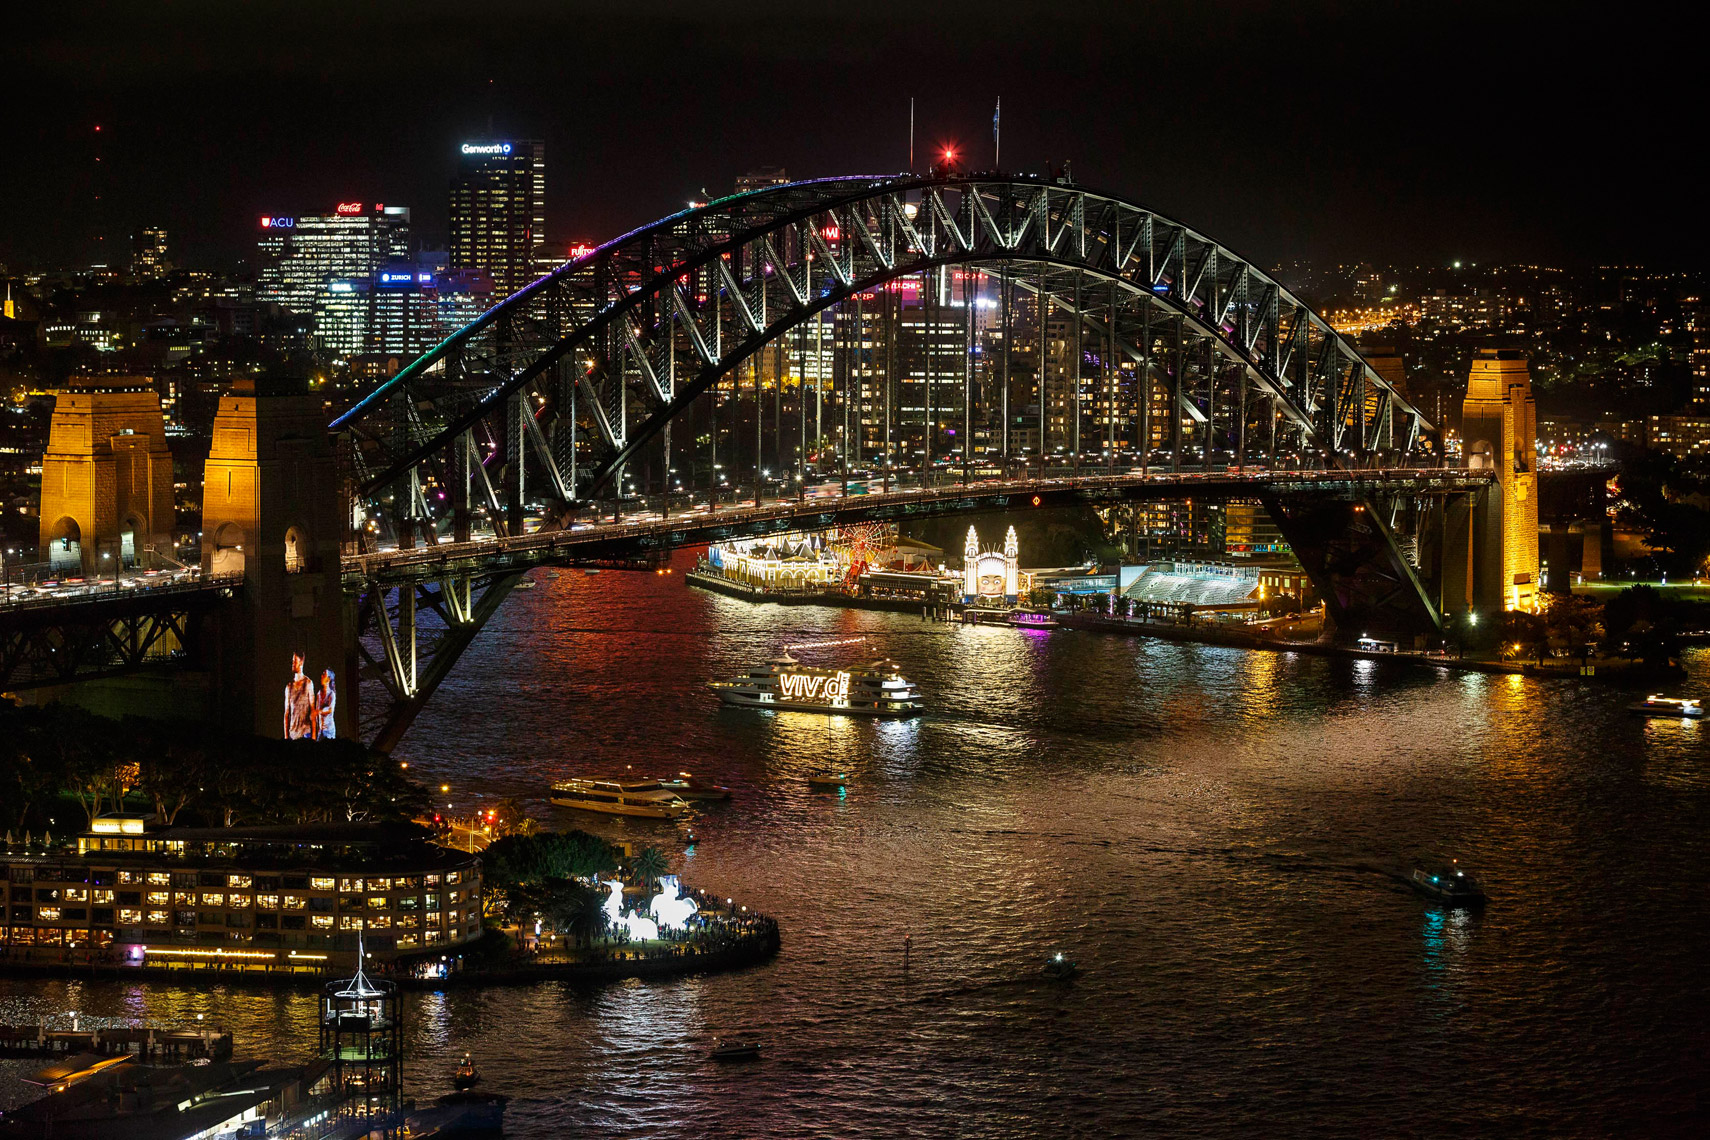 Vivid-Sydney-2014_Sydney-Harbour-Bridge-from-AMP-Tower_James-Horan_DNSW_011